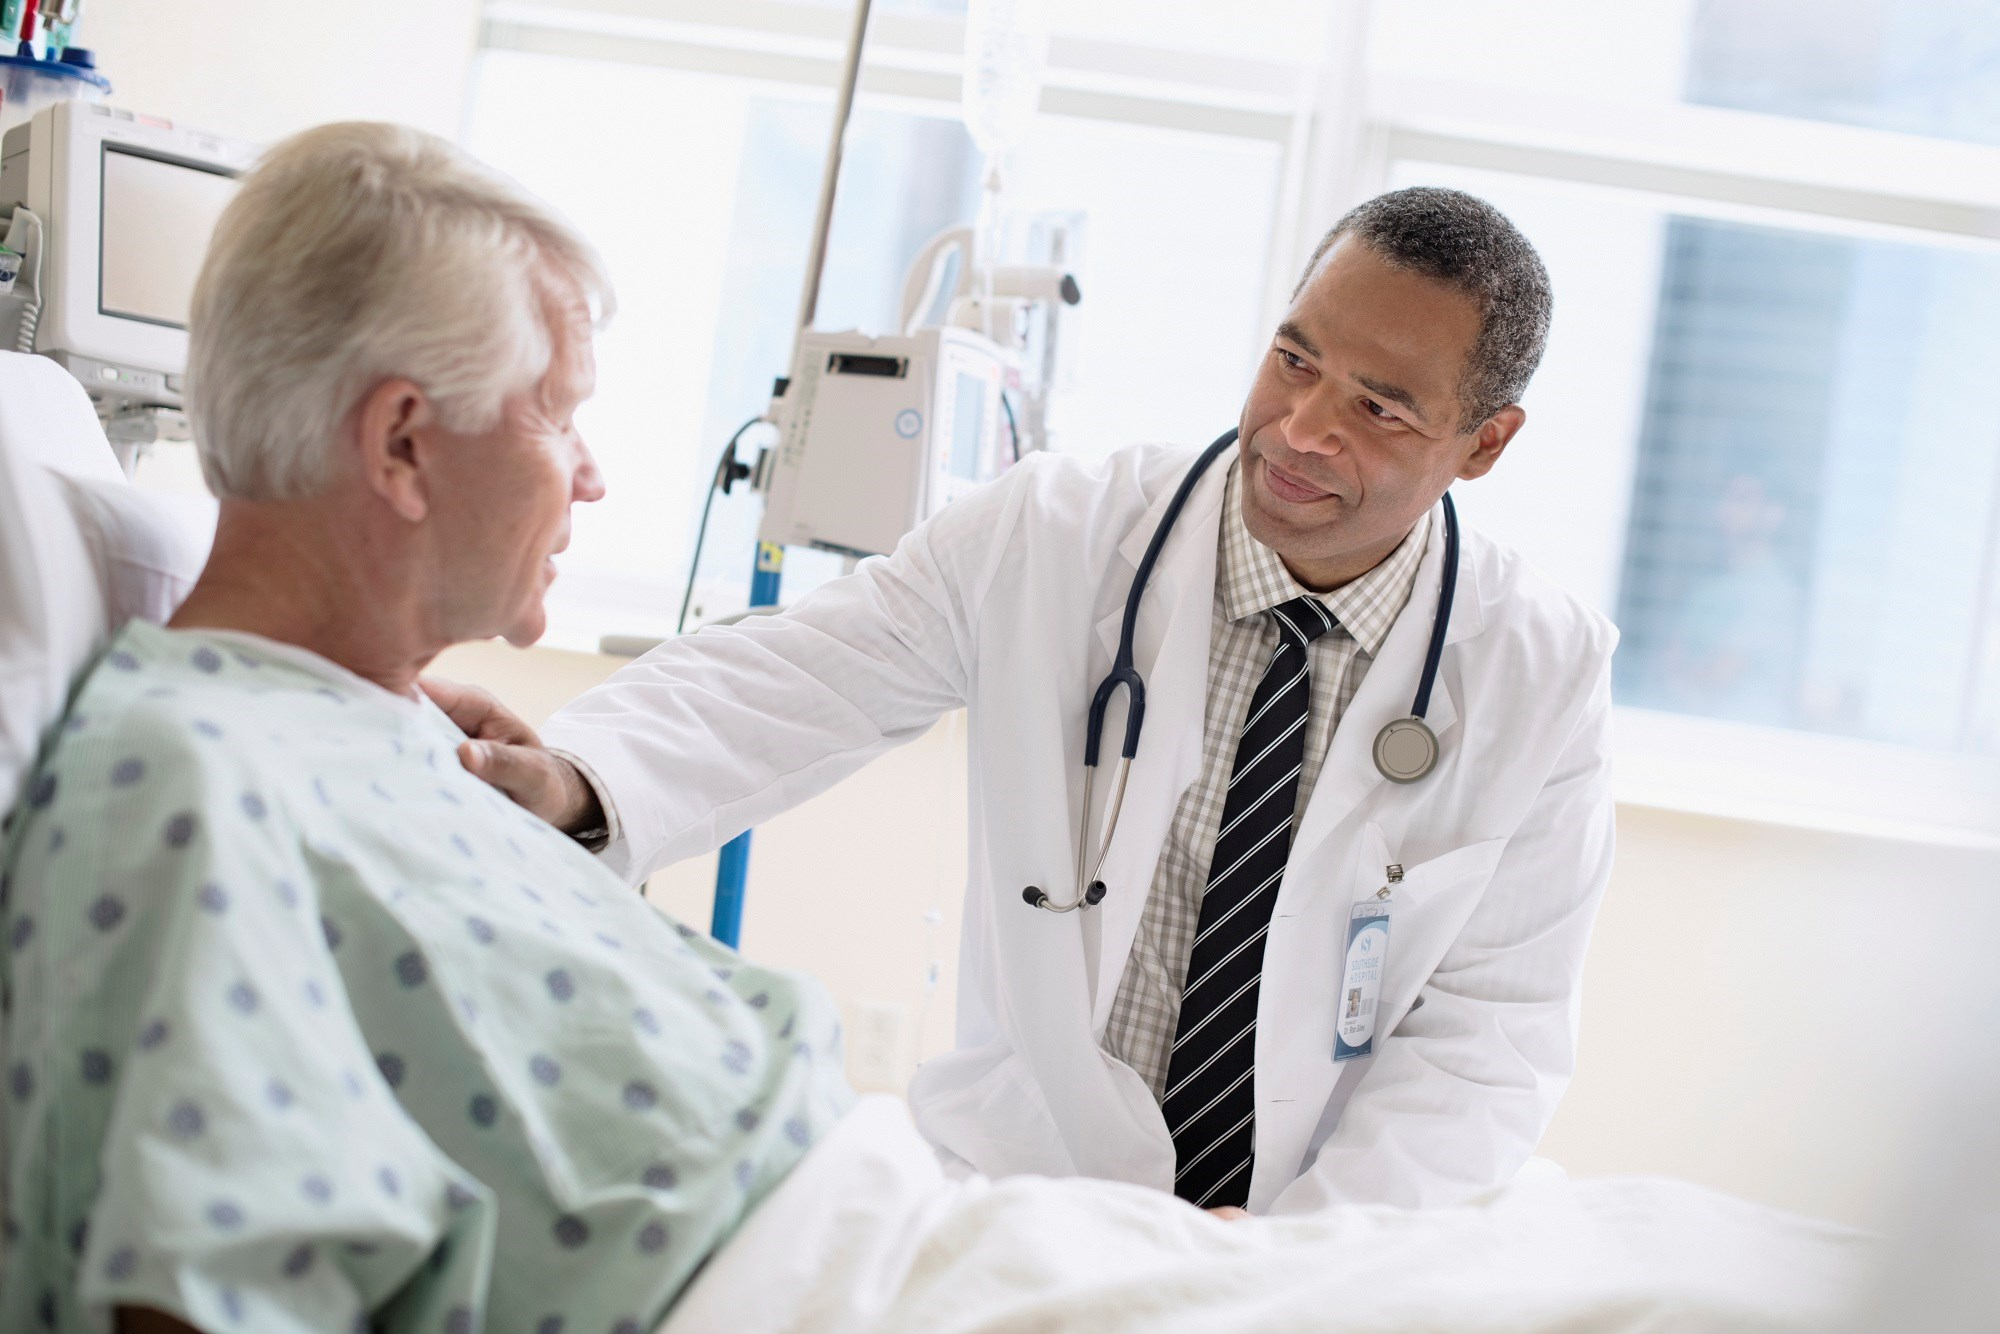 Data show no link between the risk for hospitalized infection and DMARDs or anti-TNF agents in patients with ankylosing spondylitis.